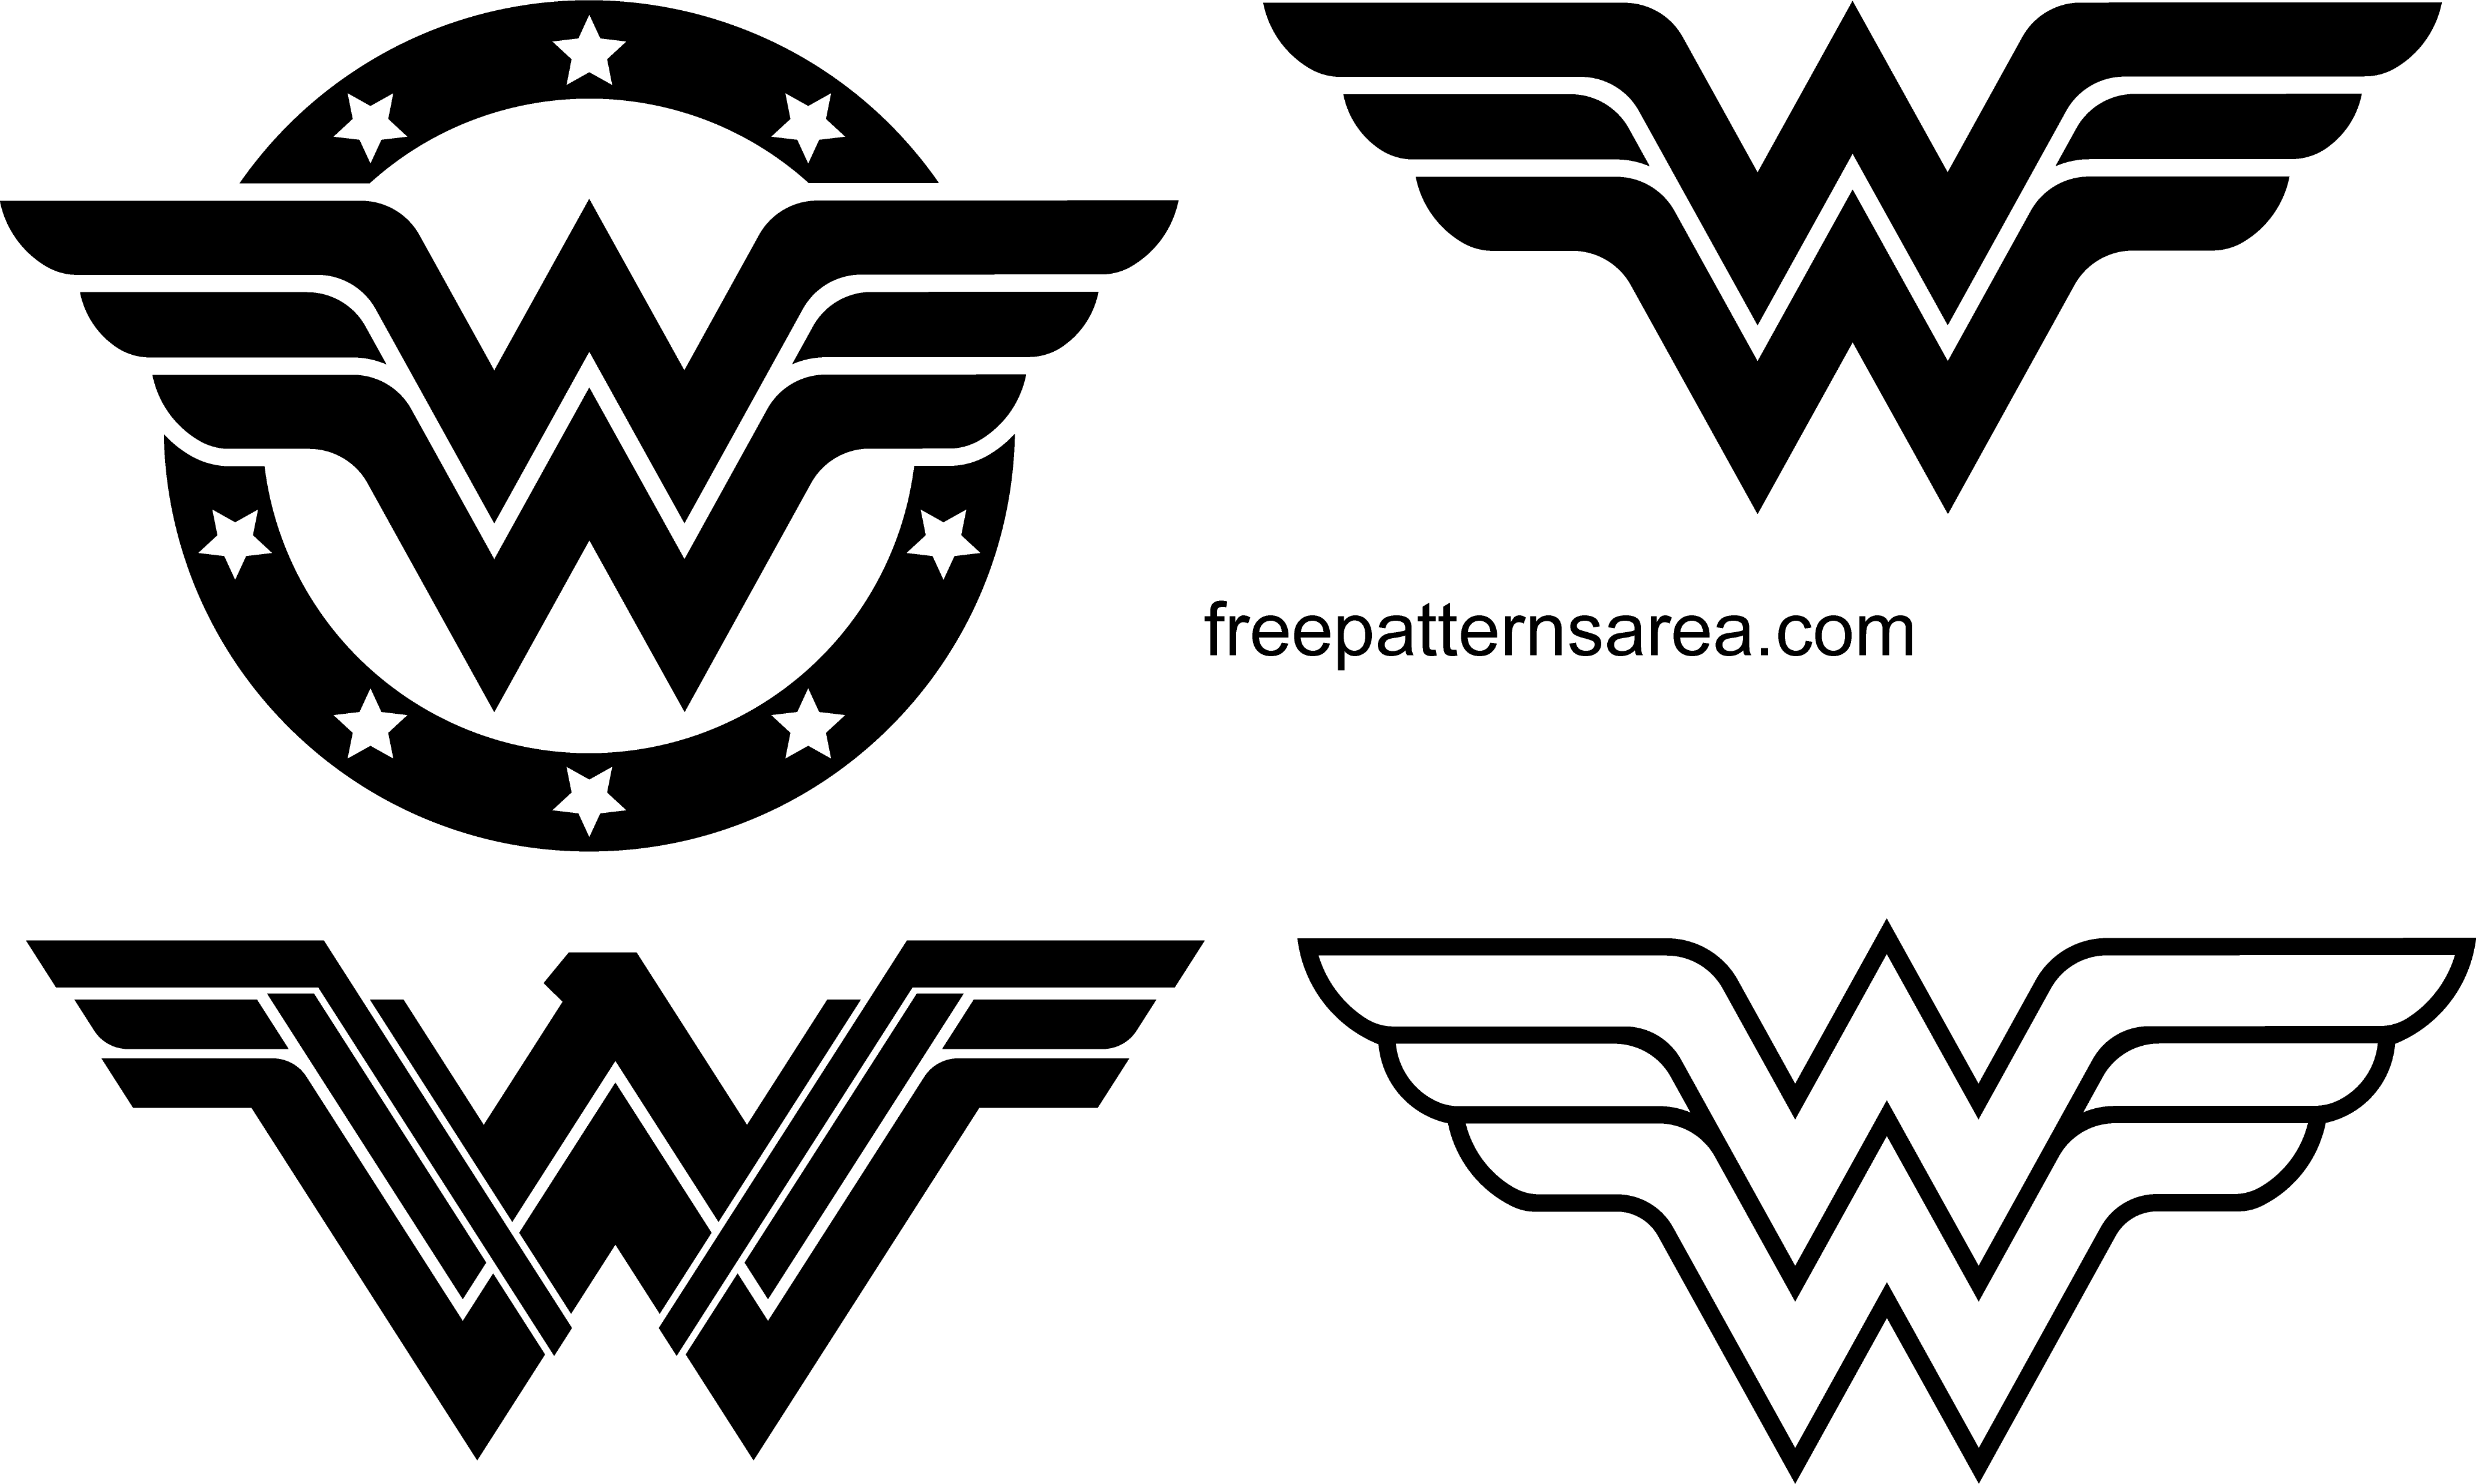 Wonder Woman Logo Symbol And Silhouette Vector